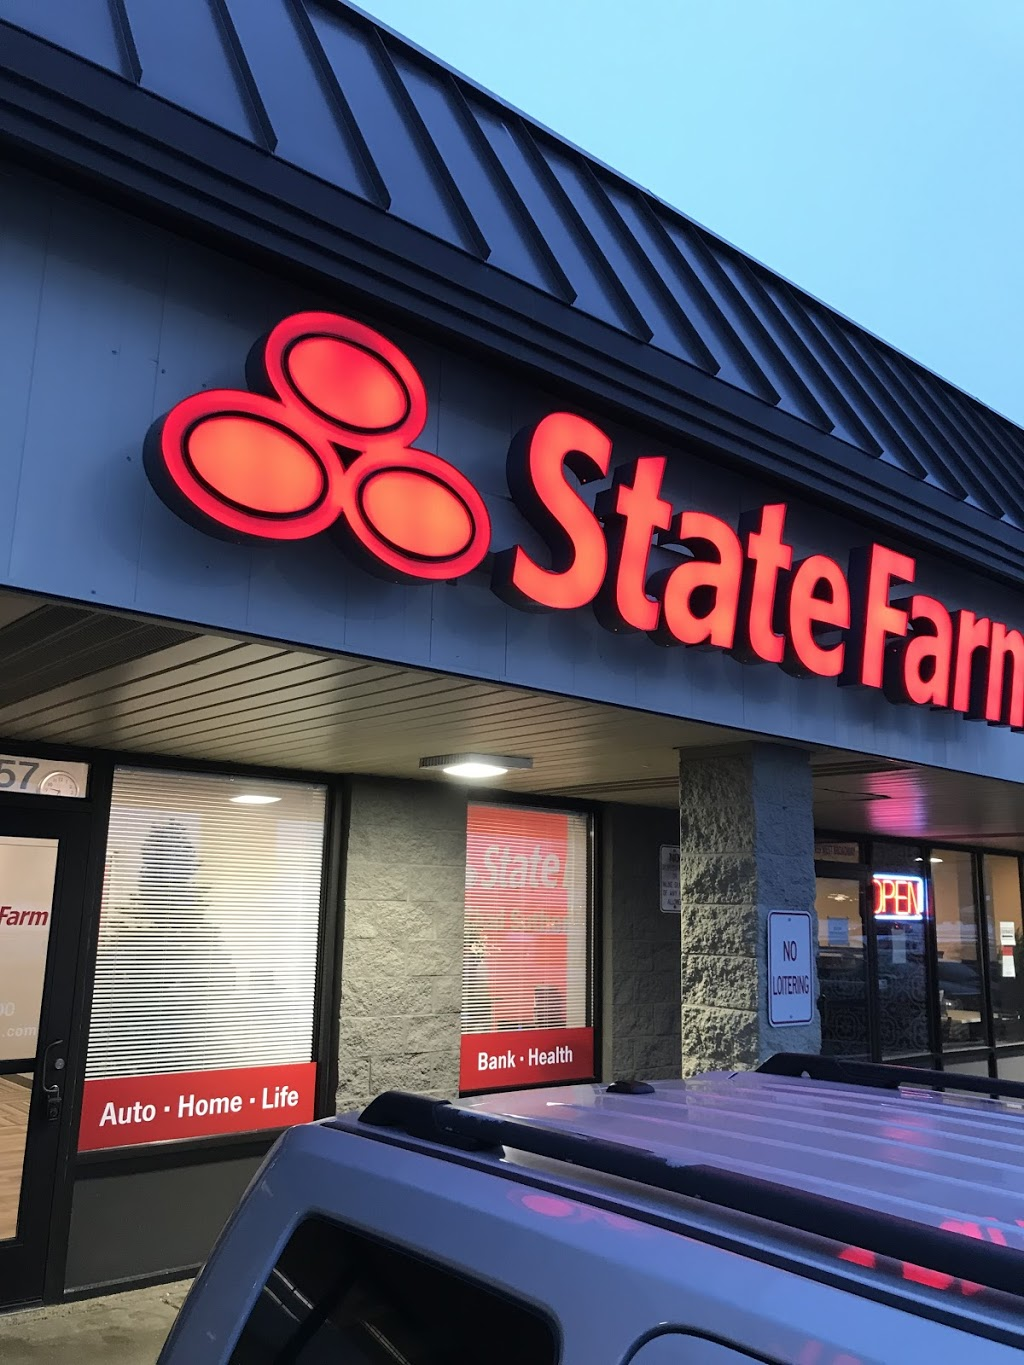 Chad Sutherland - State Farm Insurance Agent   insurance agency   8457 W Broadway Ave, Brooklyn Park, MN 55445, USA   7634243000 OR +1 763-424-3000